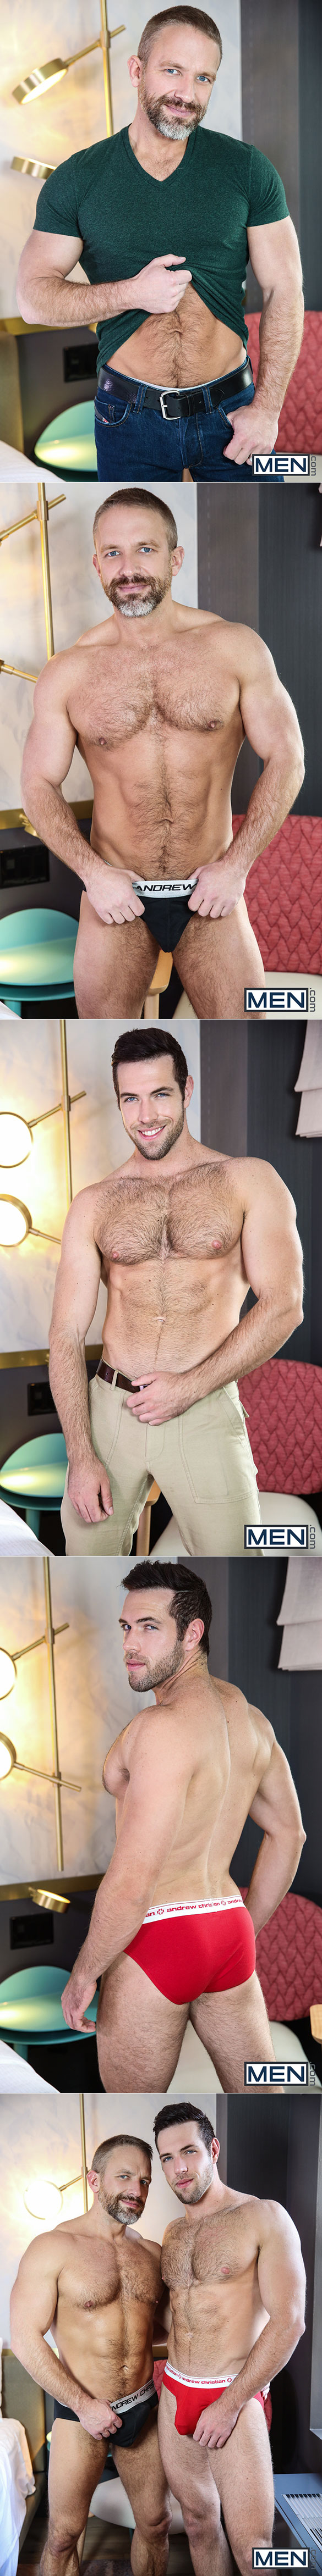 "Men.com: Alex Mecum and Dirk Caber flip fuck in ""Irresponsible, Part 2"""